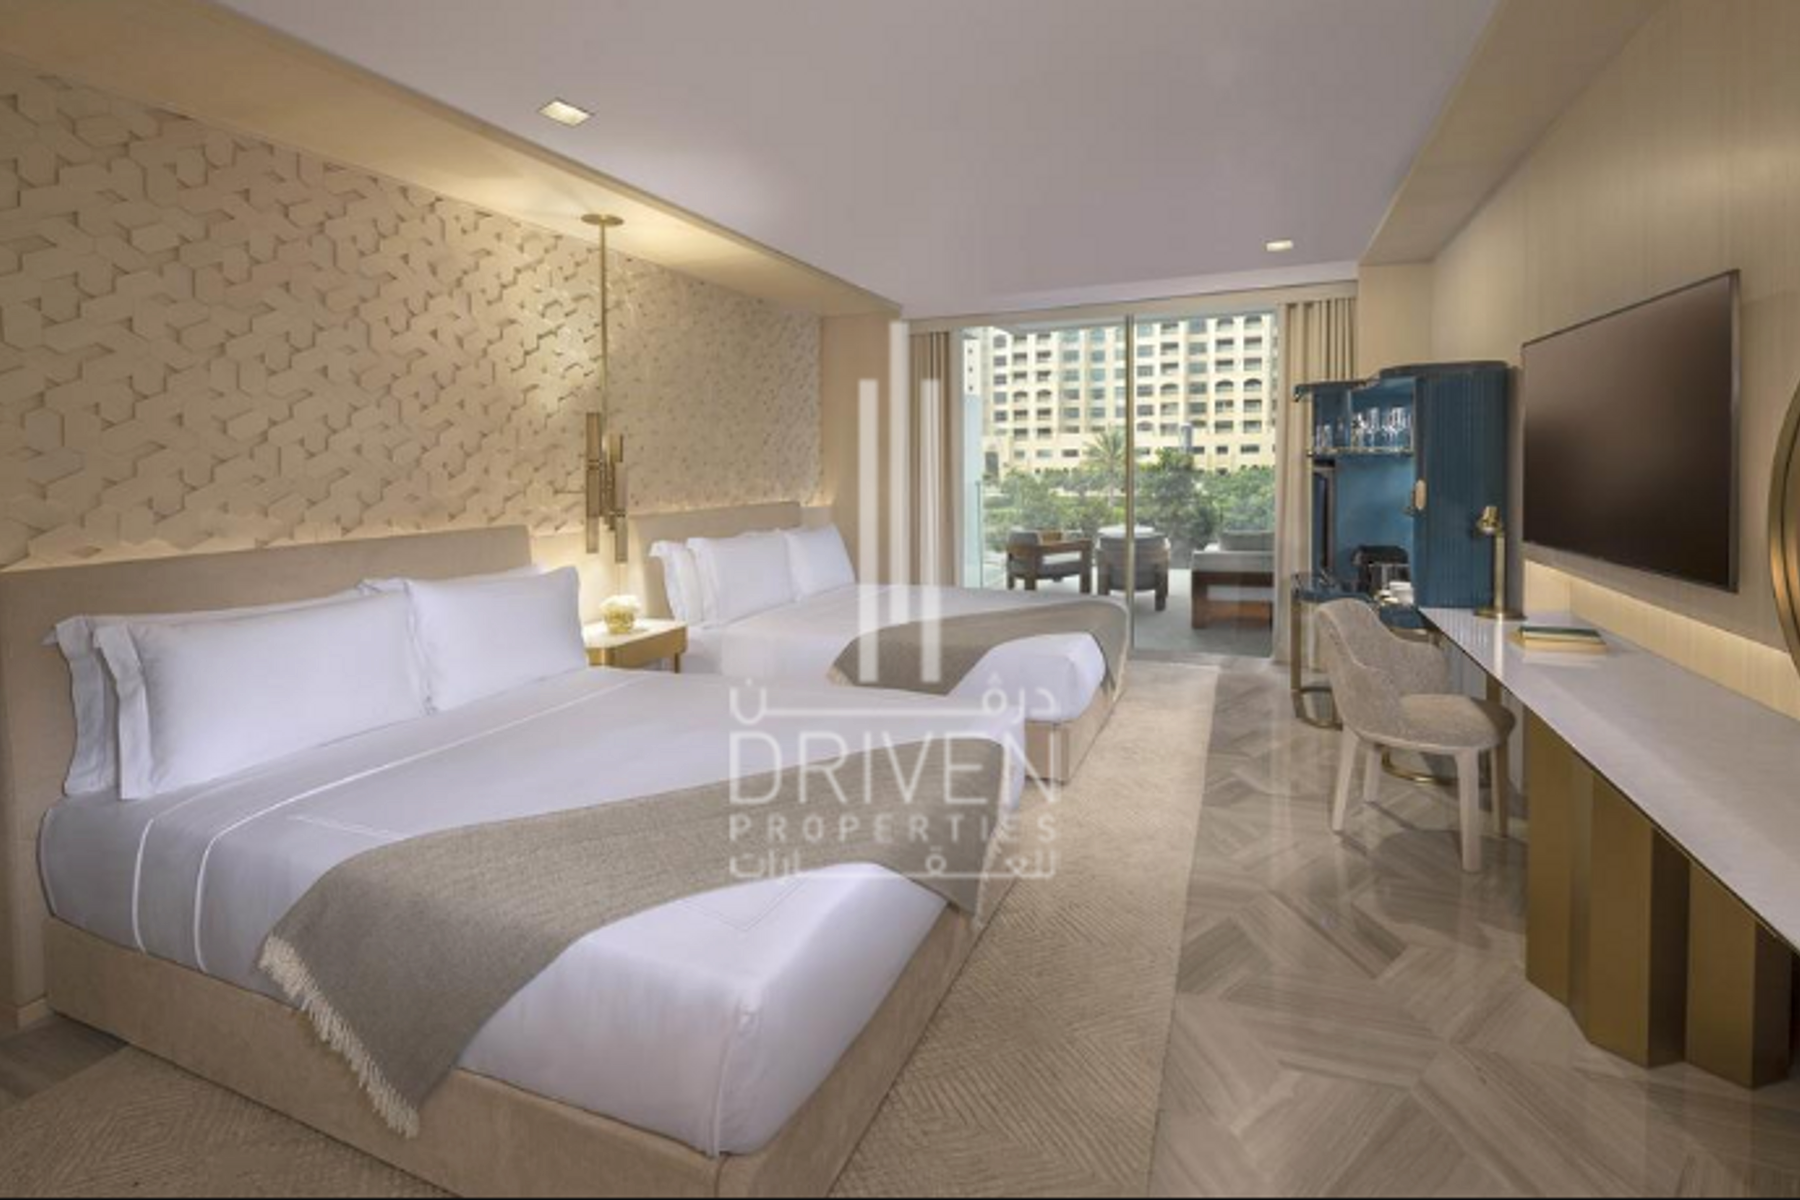 Apartment for Sale in FIVE Palm Jumeirah - Palm Jumeirah